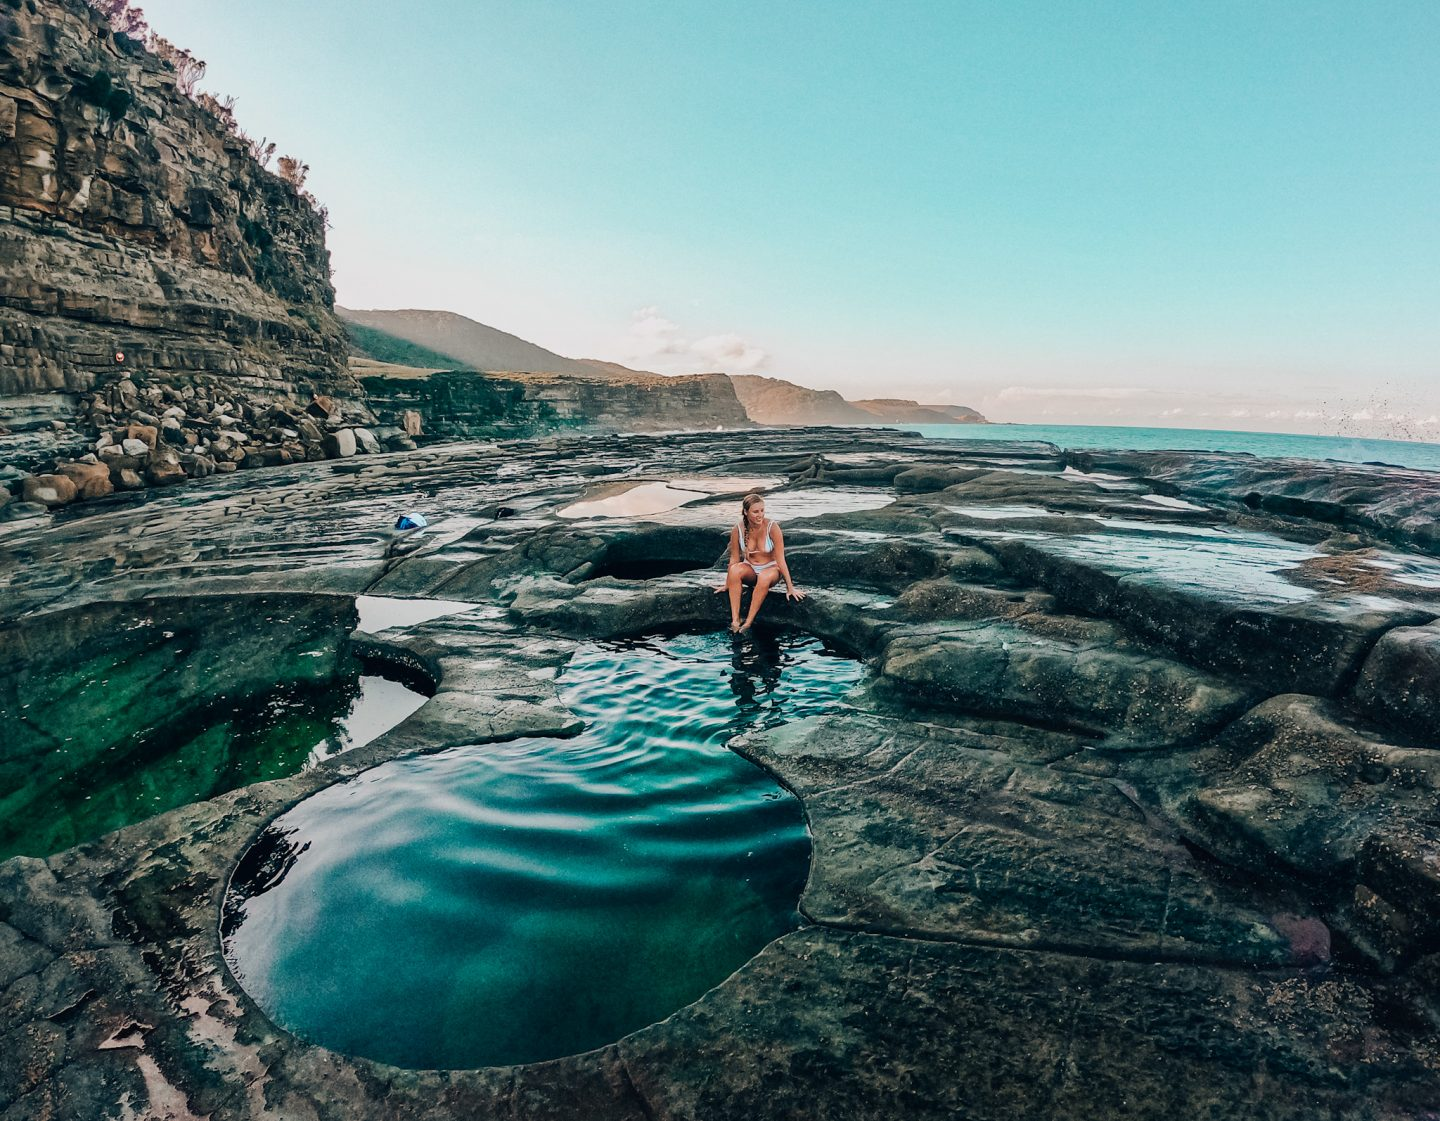 Natural pool shown in rocks with girl sitting on edge with legs in pool in Sydney, Australia park